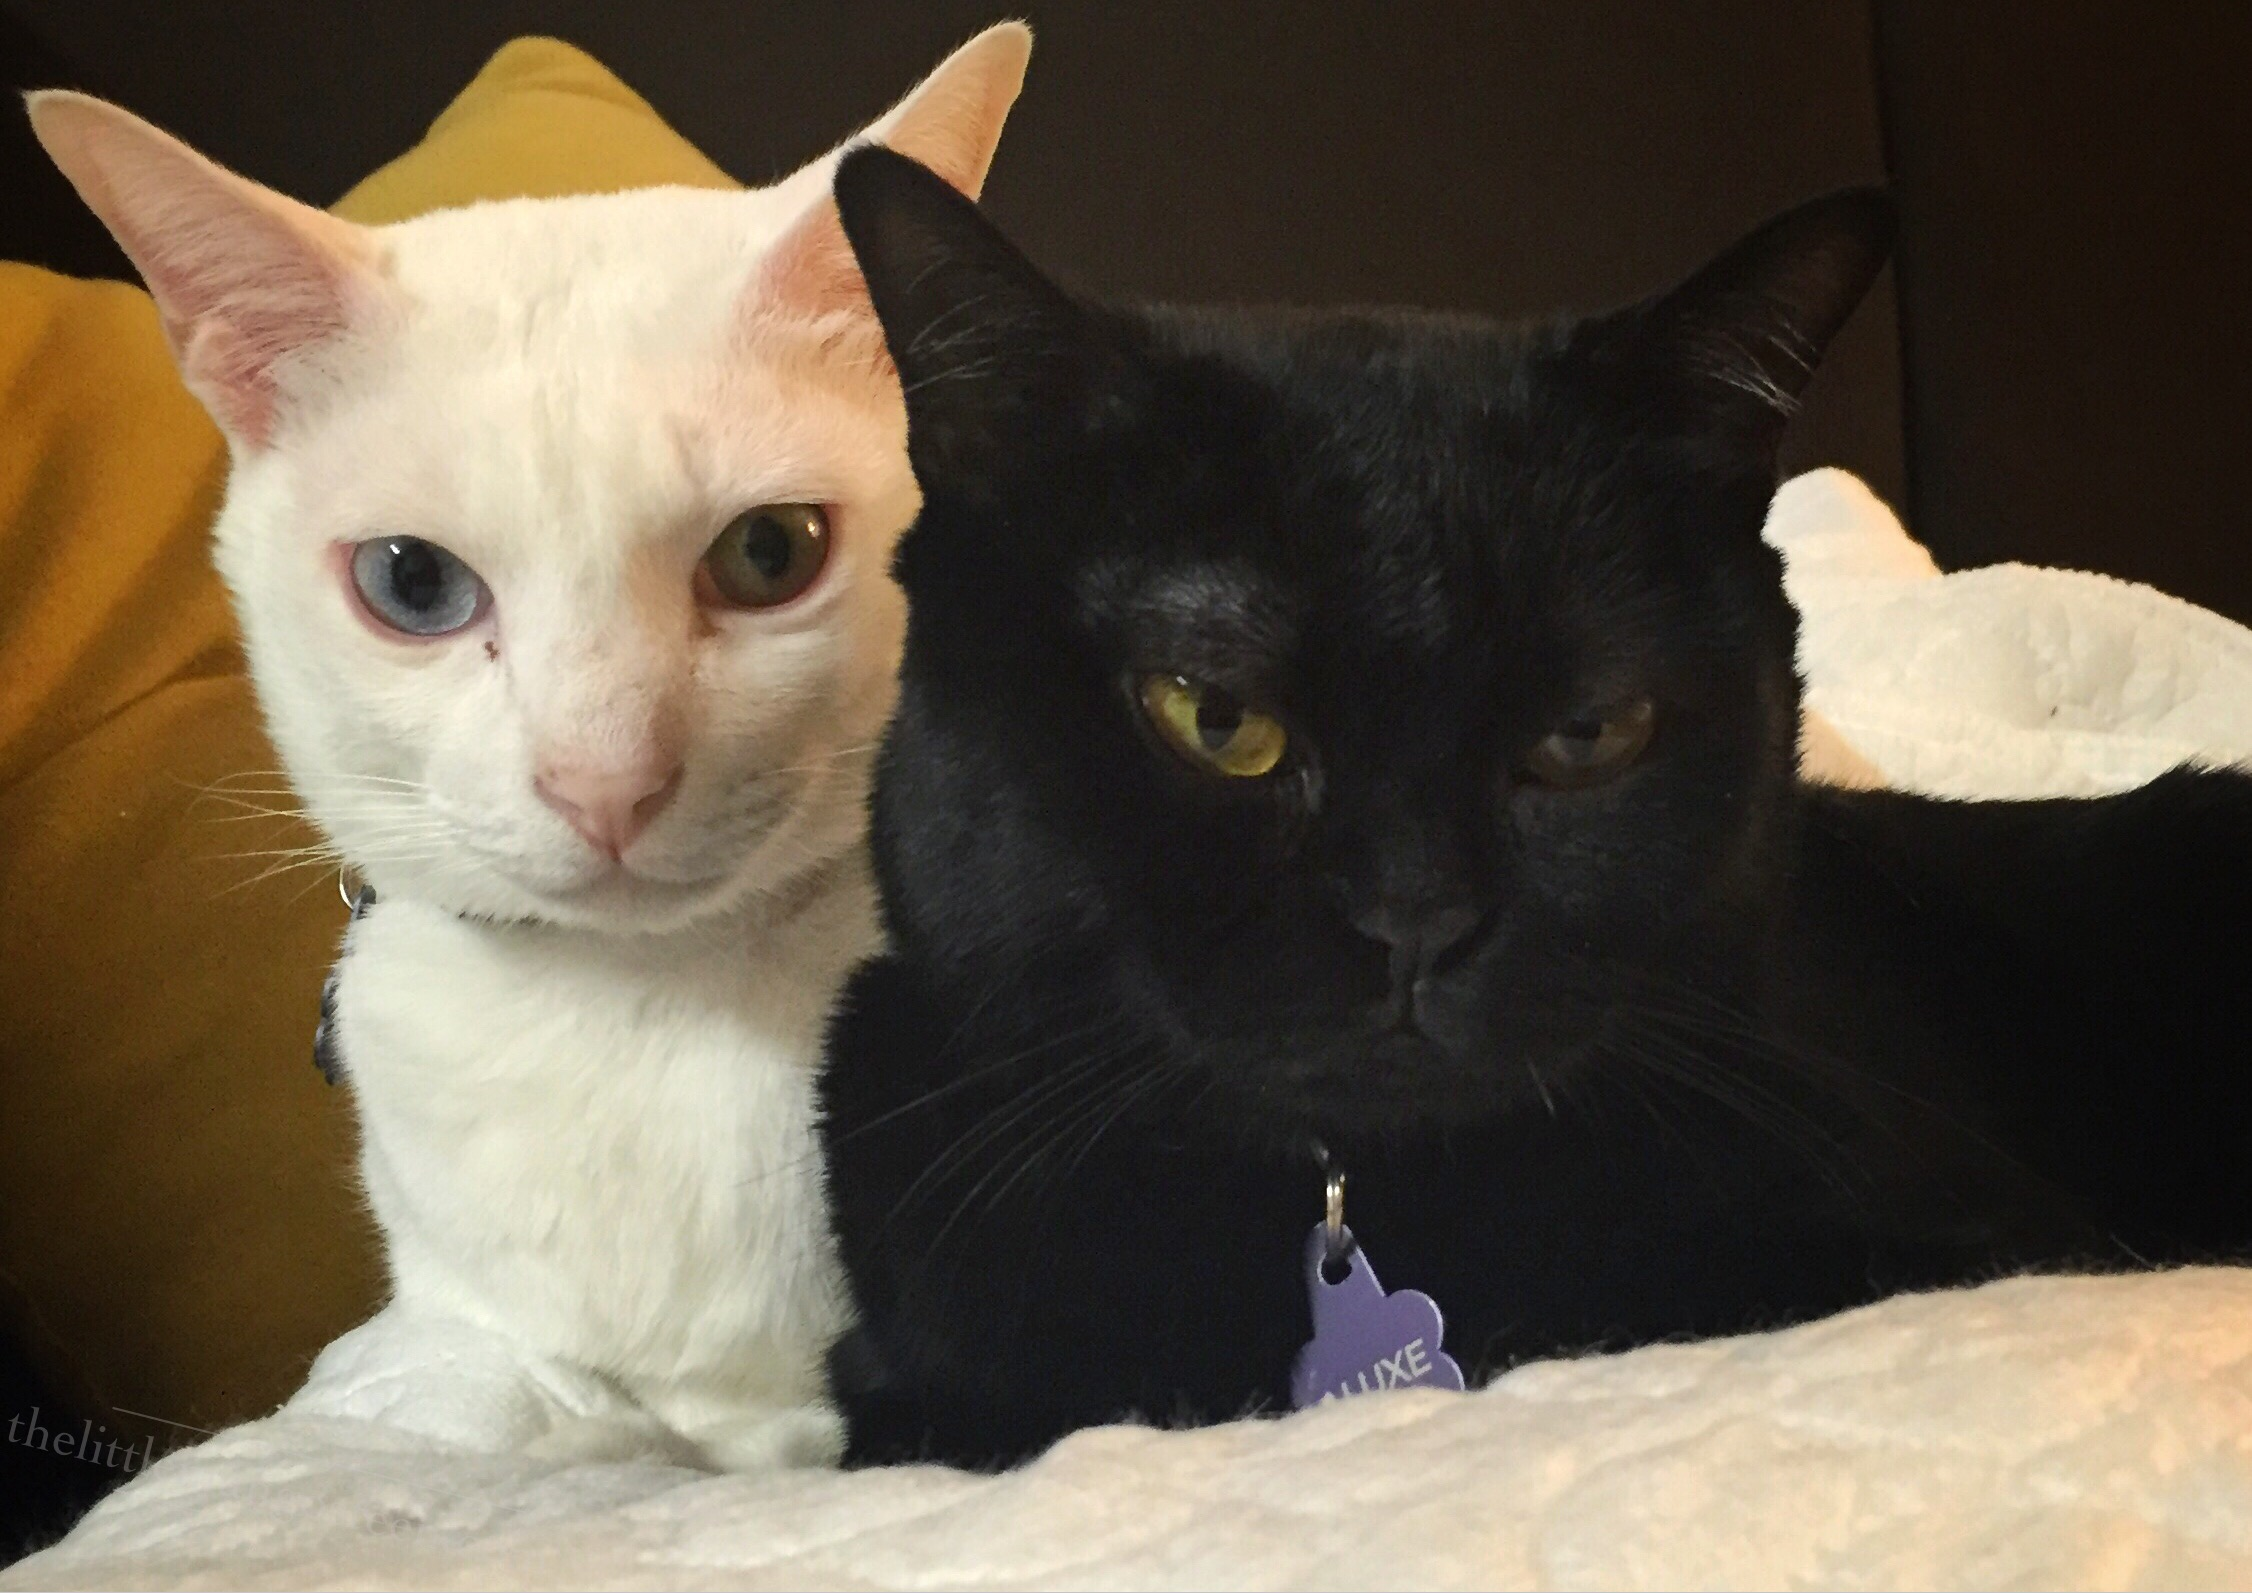 A white khaomanee cat with odd eyes and an all black bombay cat with yellow eyes cuddled together